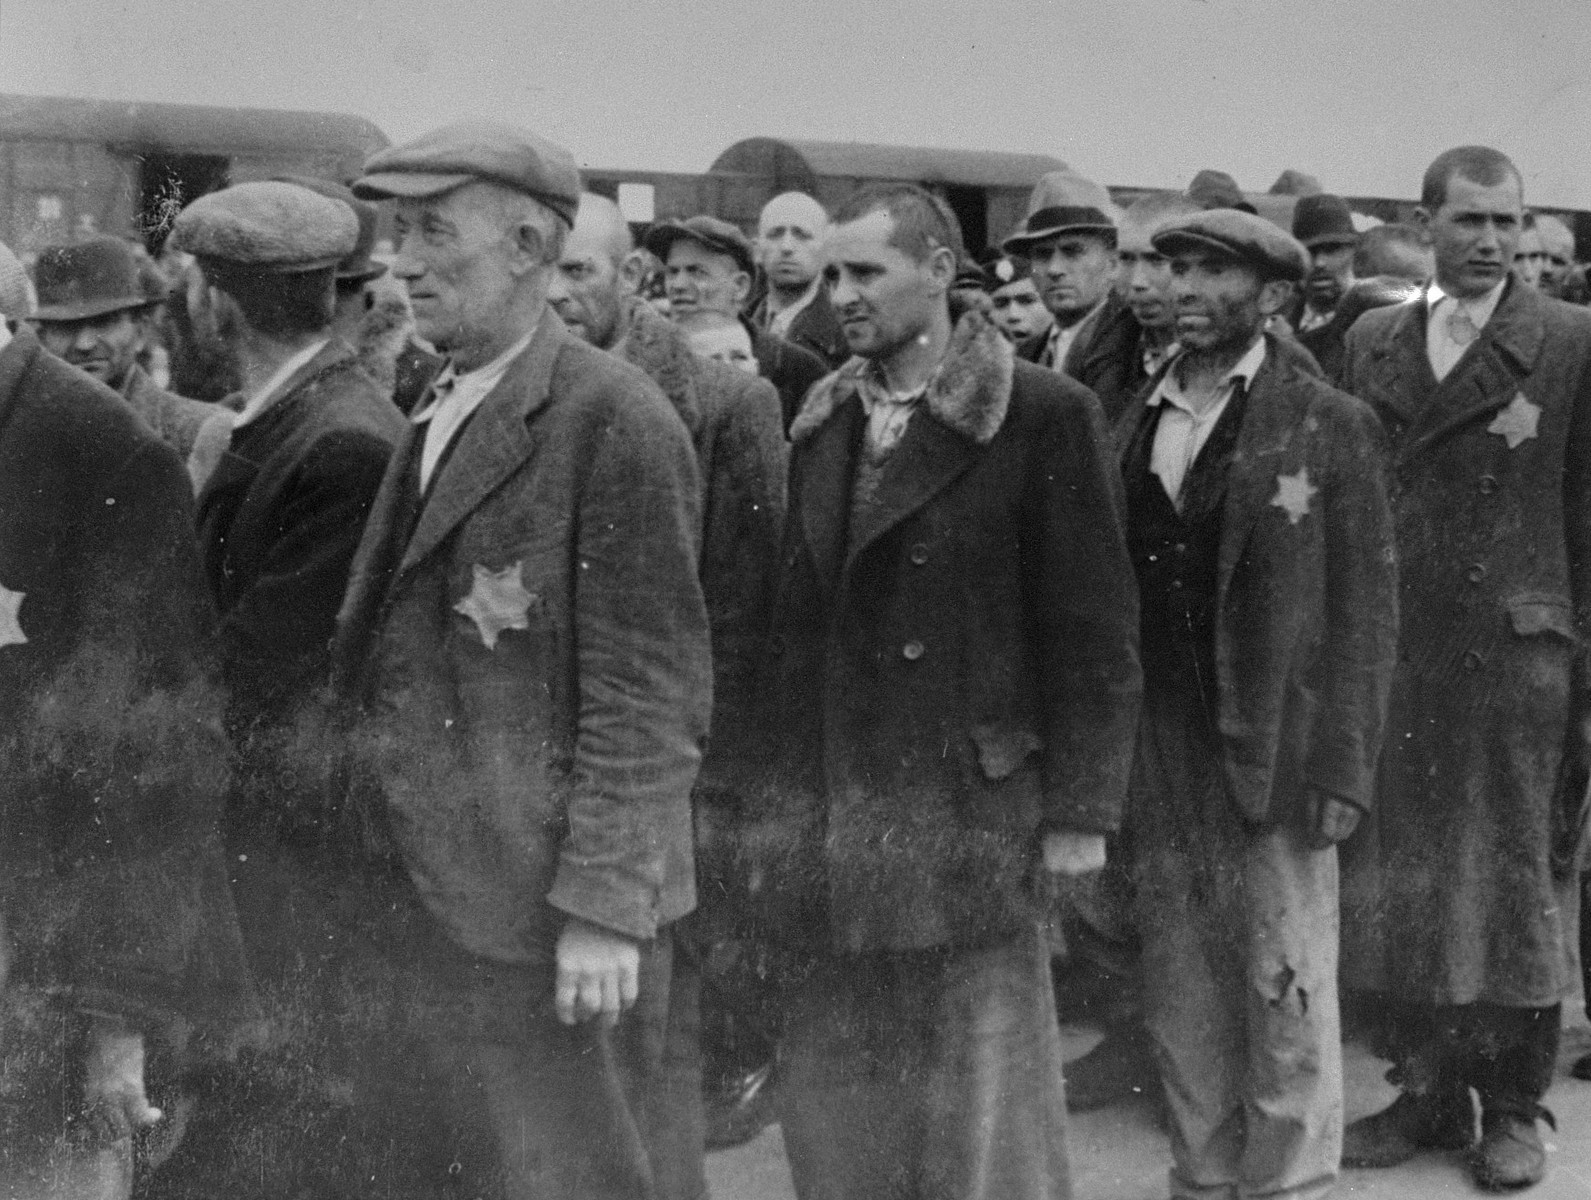 Jewish men from Subcarpathian Rus await selection on the ramp at Auschwitz-Birkenau.